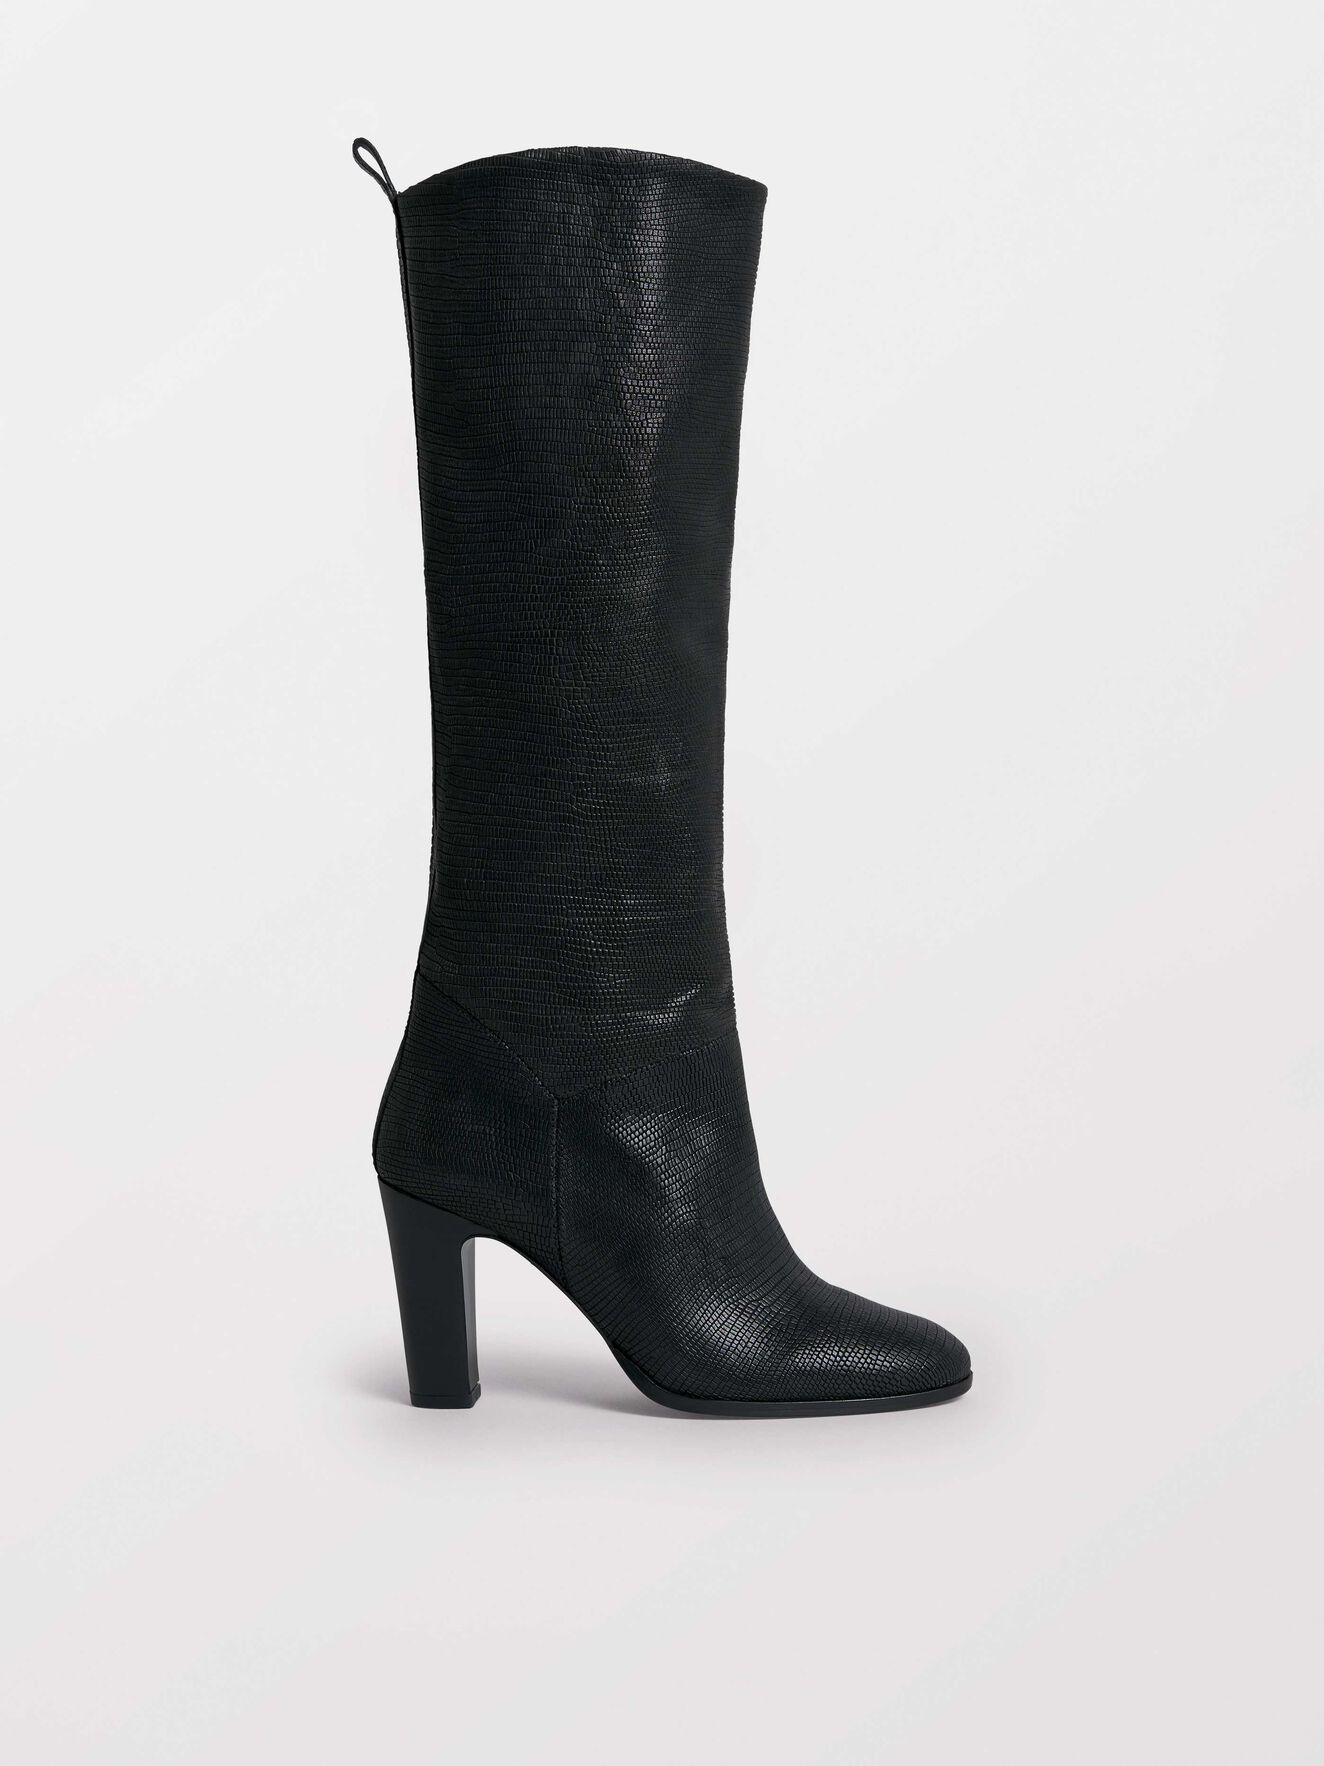 Barbieri Boots in Black from Tiger of Sweden